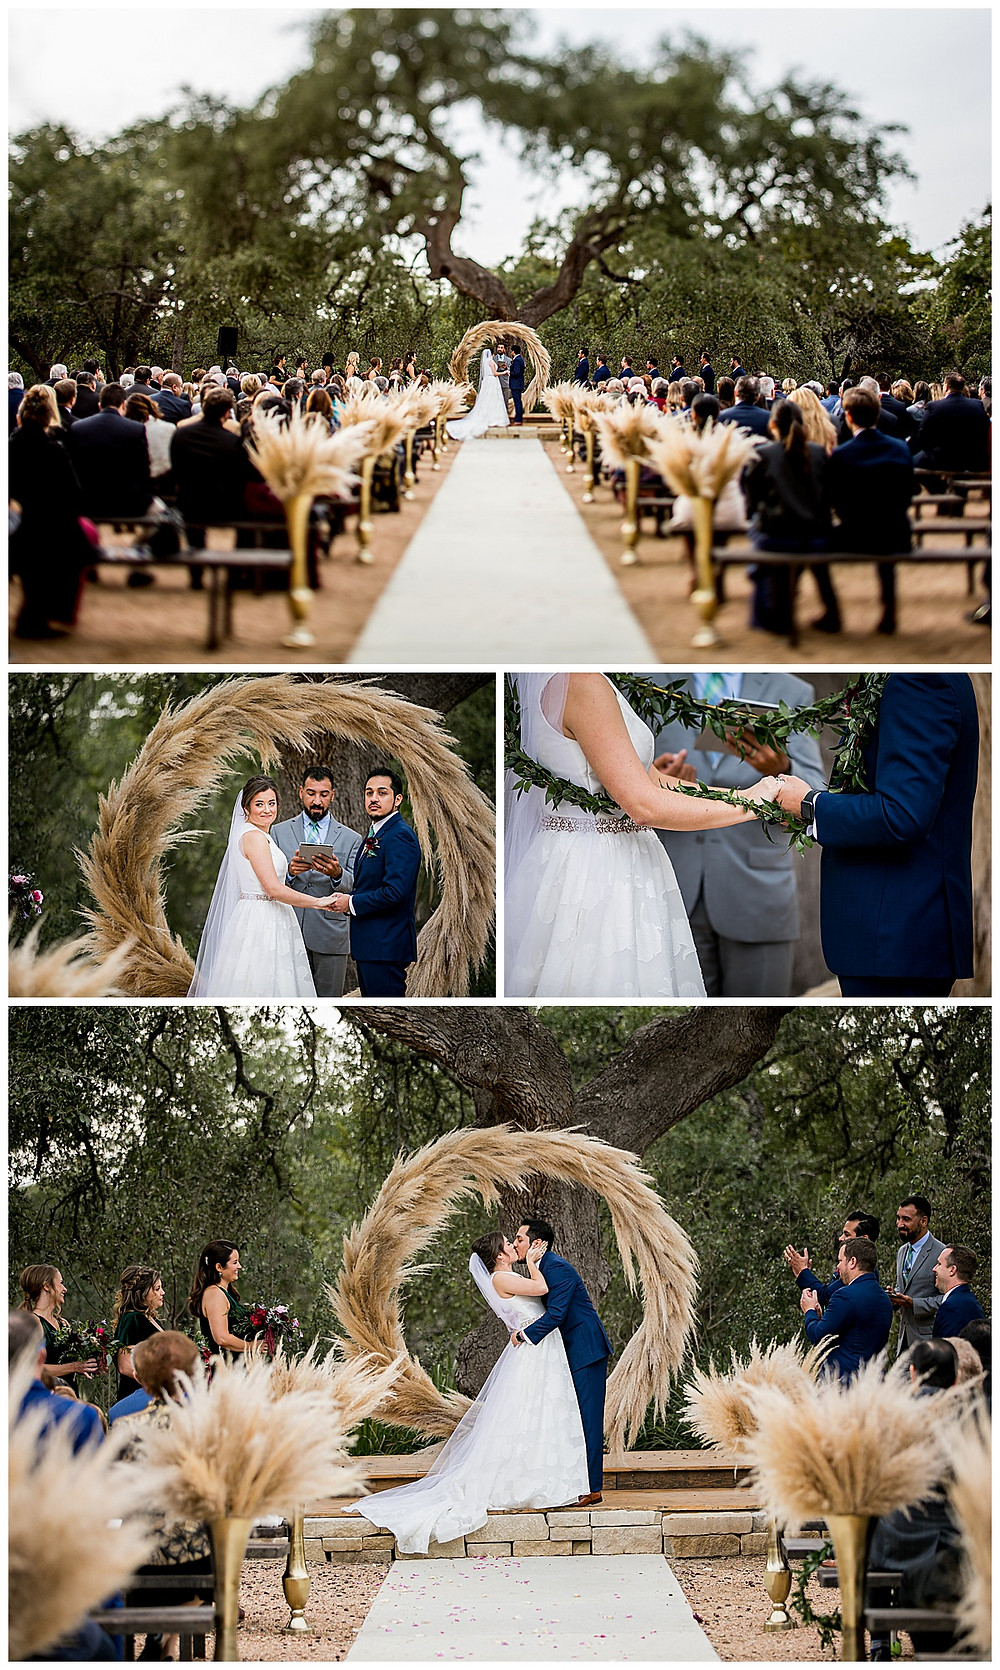 Park 31 Wedding | Wedding Planner | Wedding Details | Bridal Party | San Antonio Wedding Planner | Hill Country Wedding Planner | Luxury Event Planner | Wedding Ceremony | Pampas Grass | Bride and Groom